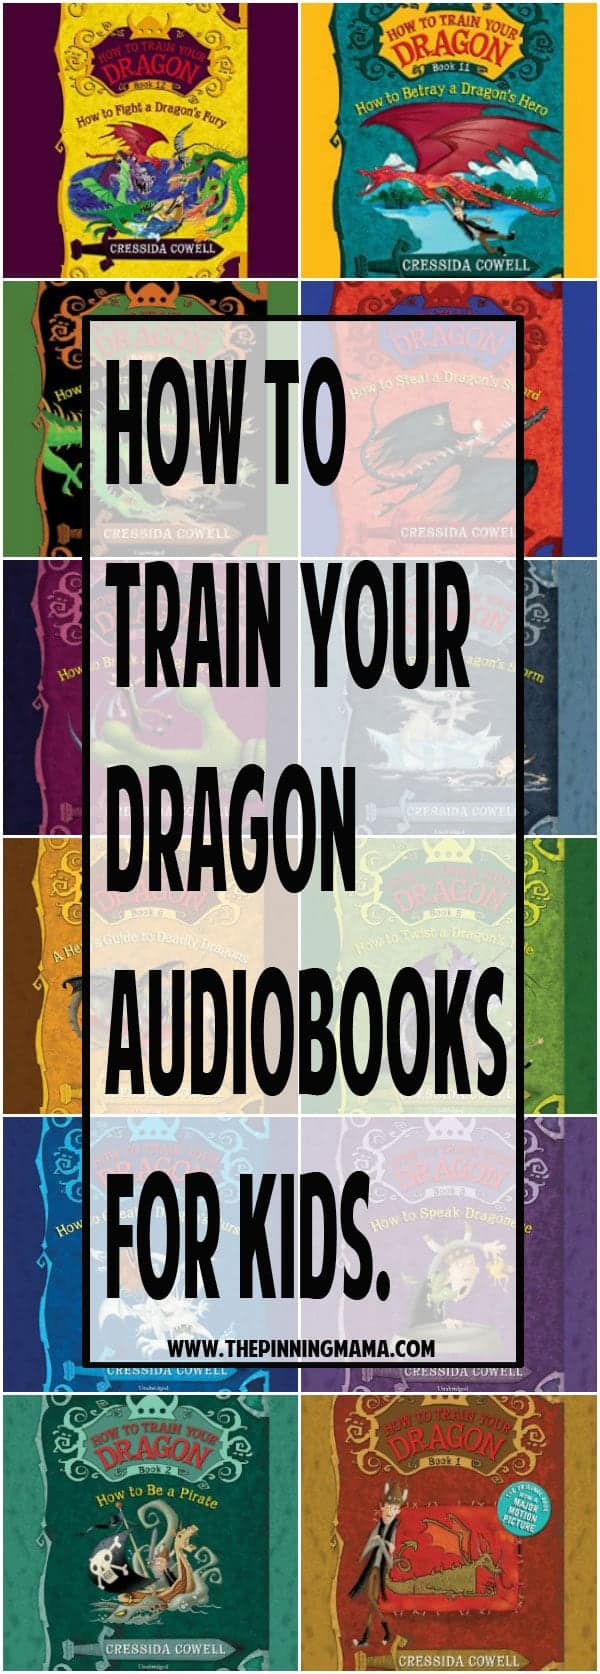 How to Train your Dragon Audio book Series. Perfect for summer road trips with kids! See more of the Best Audio Books for a Road Trip with Kids - 20+ ideas your kids will love listening to! Options for long and short trips plus series the whole family will get into!!